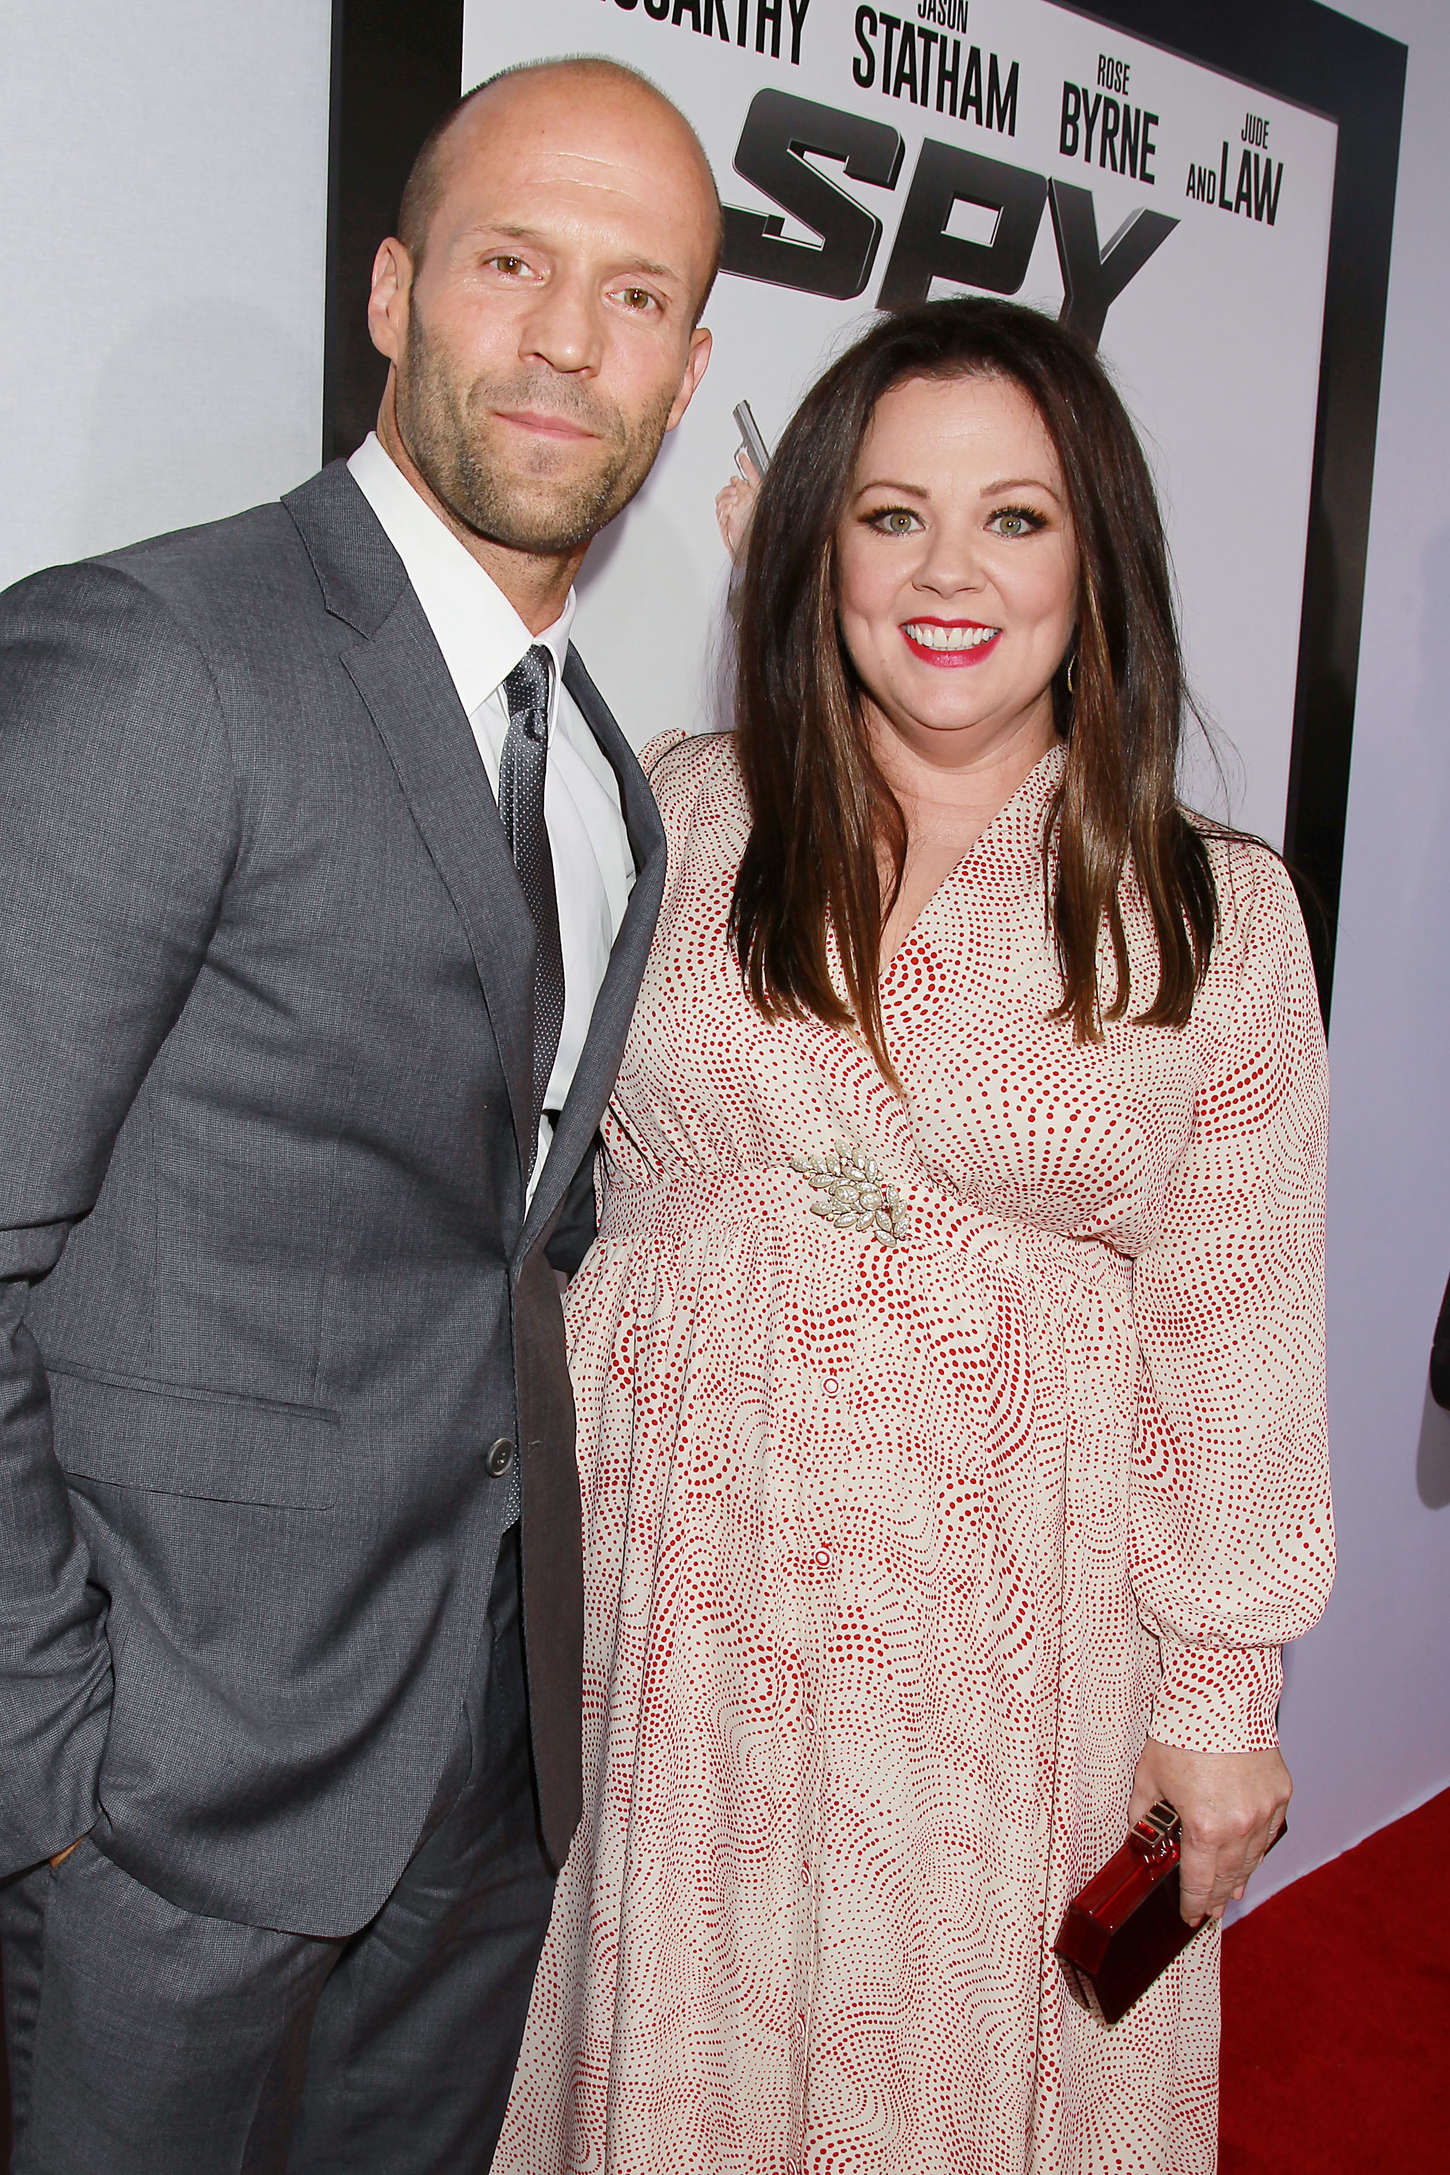 Melissa McCarthy Spy Premiere in New York